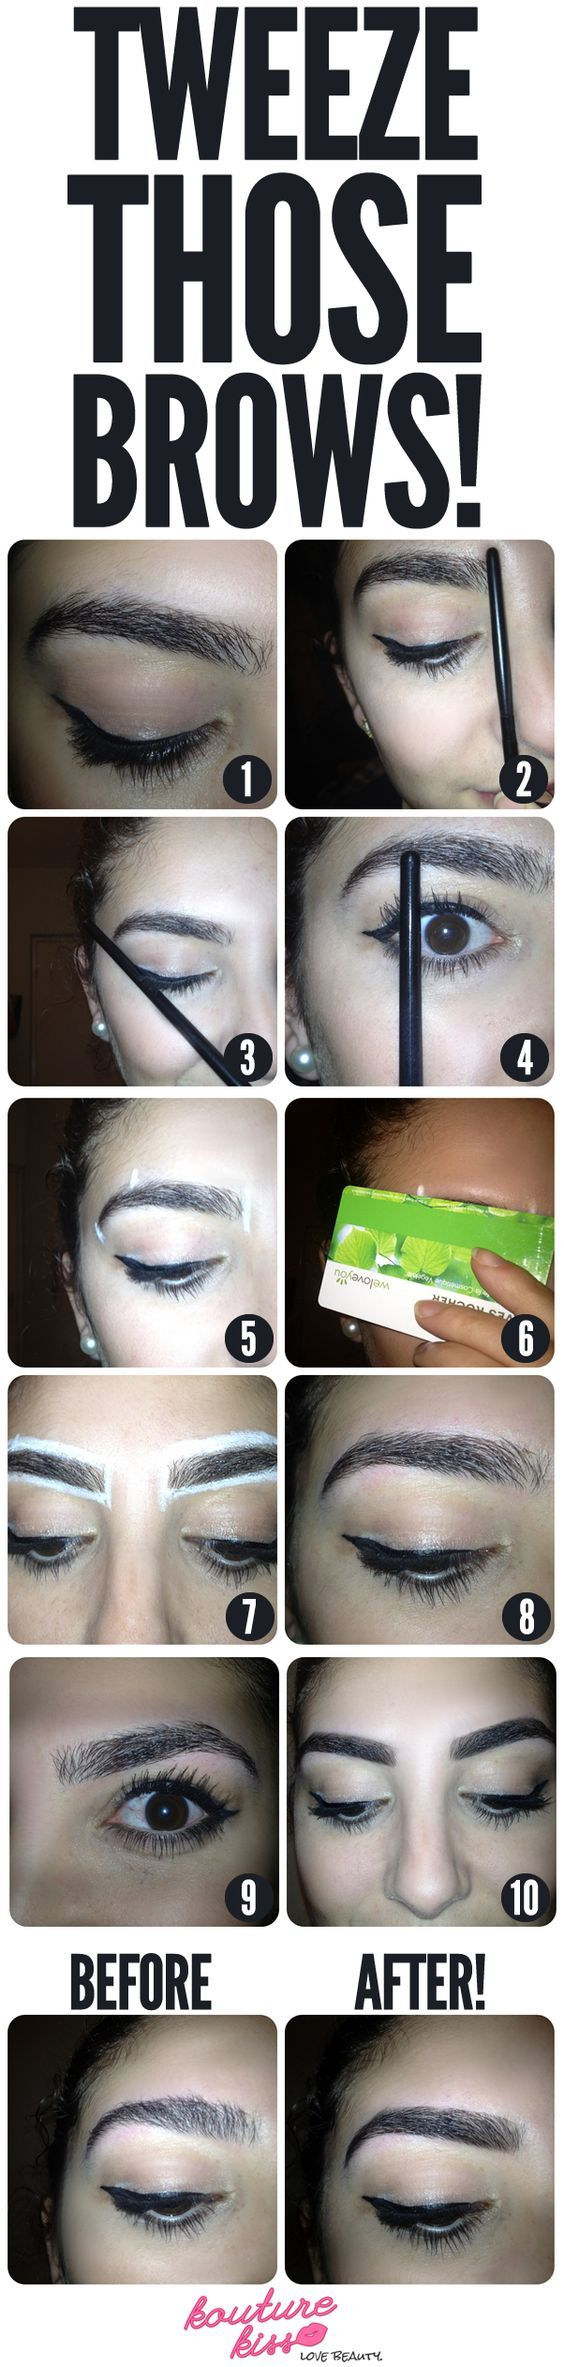 Tutorial: Tweeze Those Eyebrows! - Handy but you need to read the step by steps for it to make sense.: